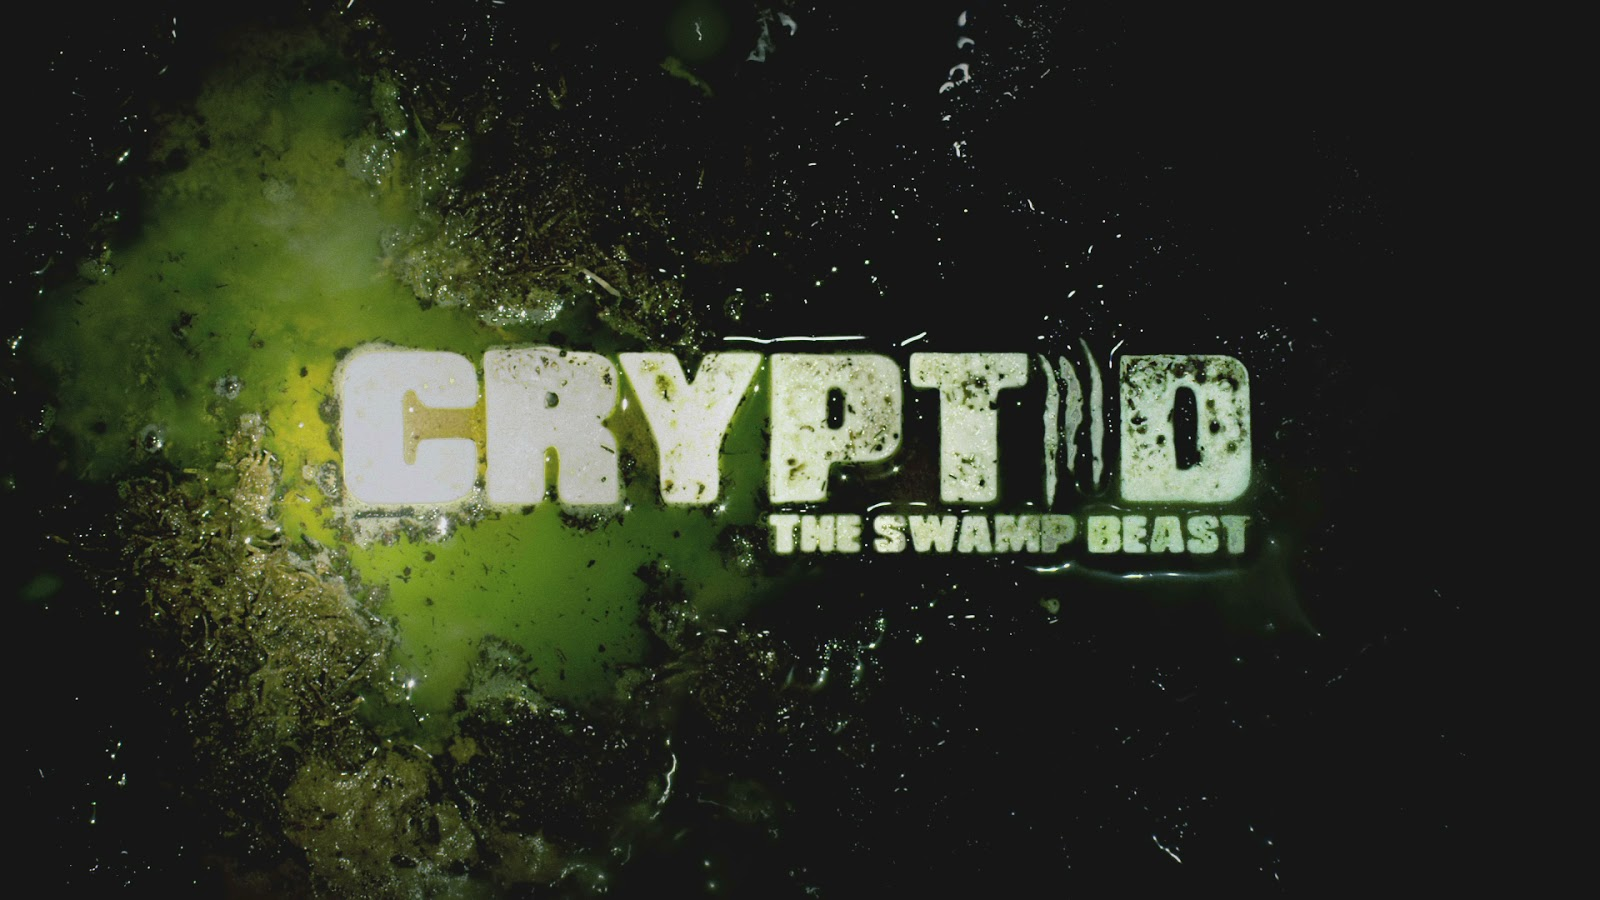 The History Channel's CRYPTID: THE SWAMP BEAST